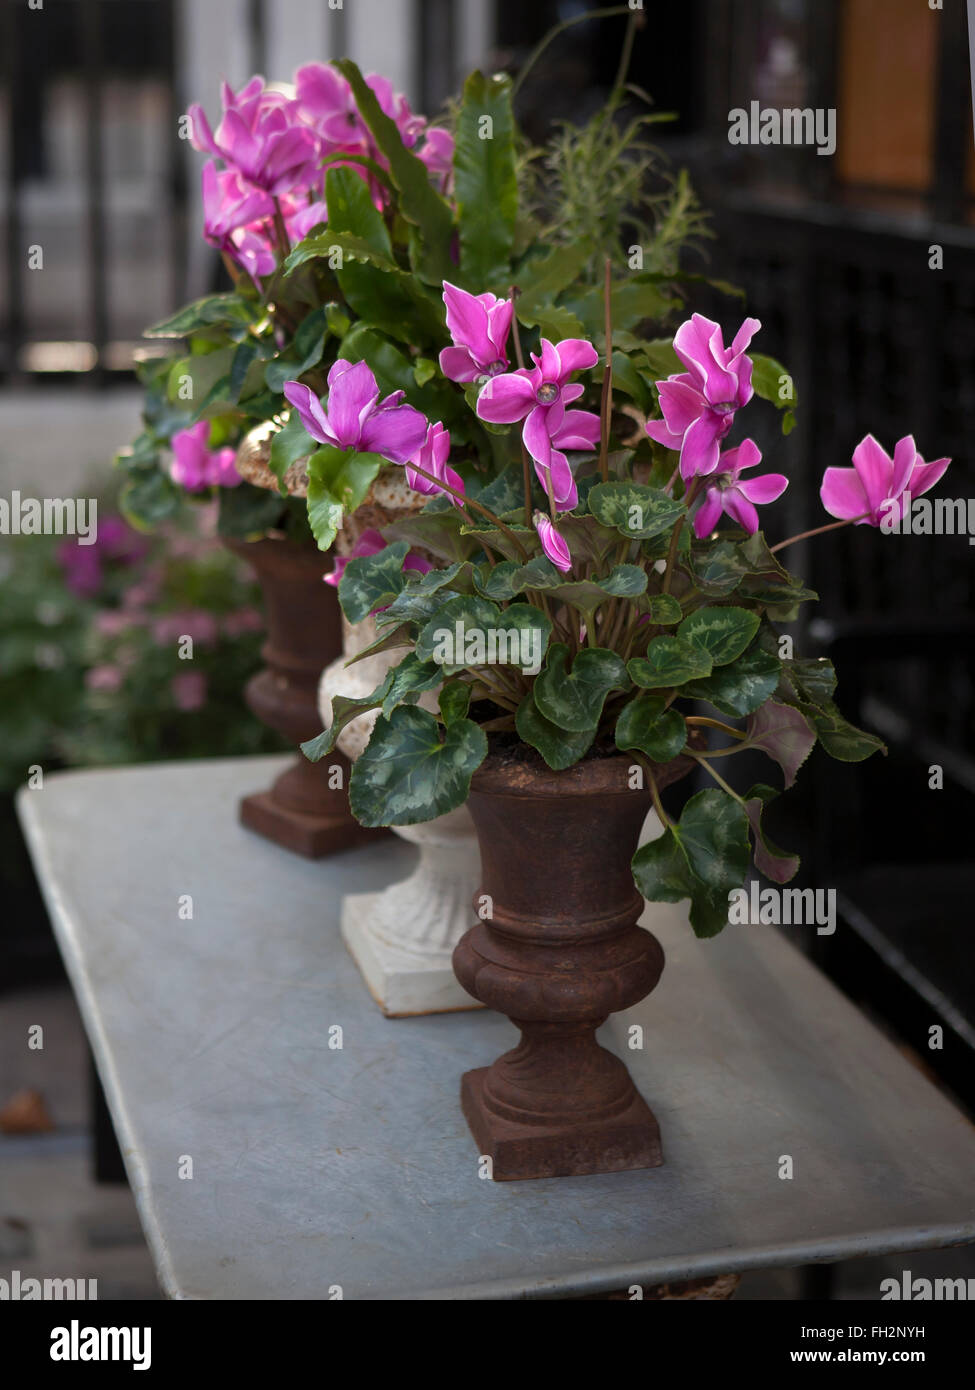 pink fresh cyclamen in wooden box for saling - Stock Image